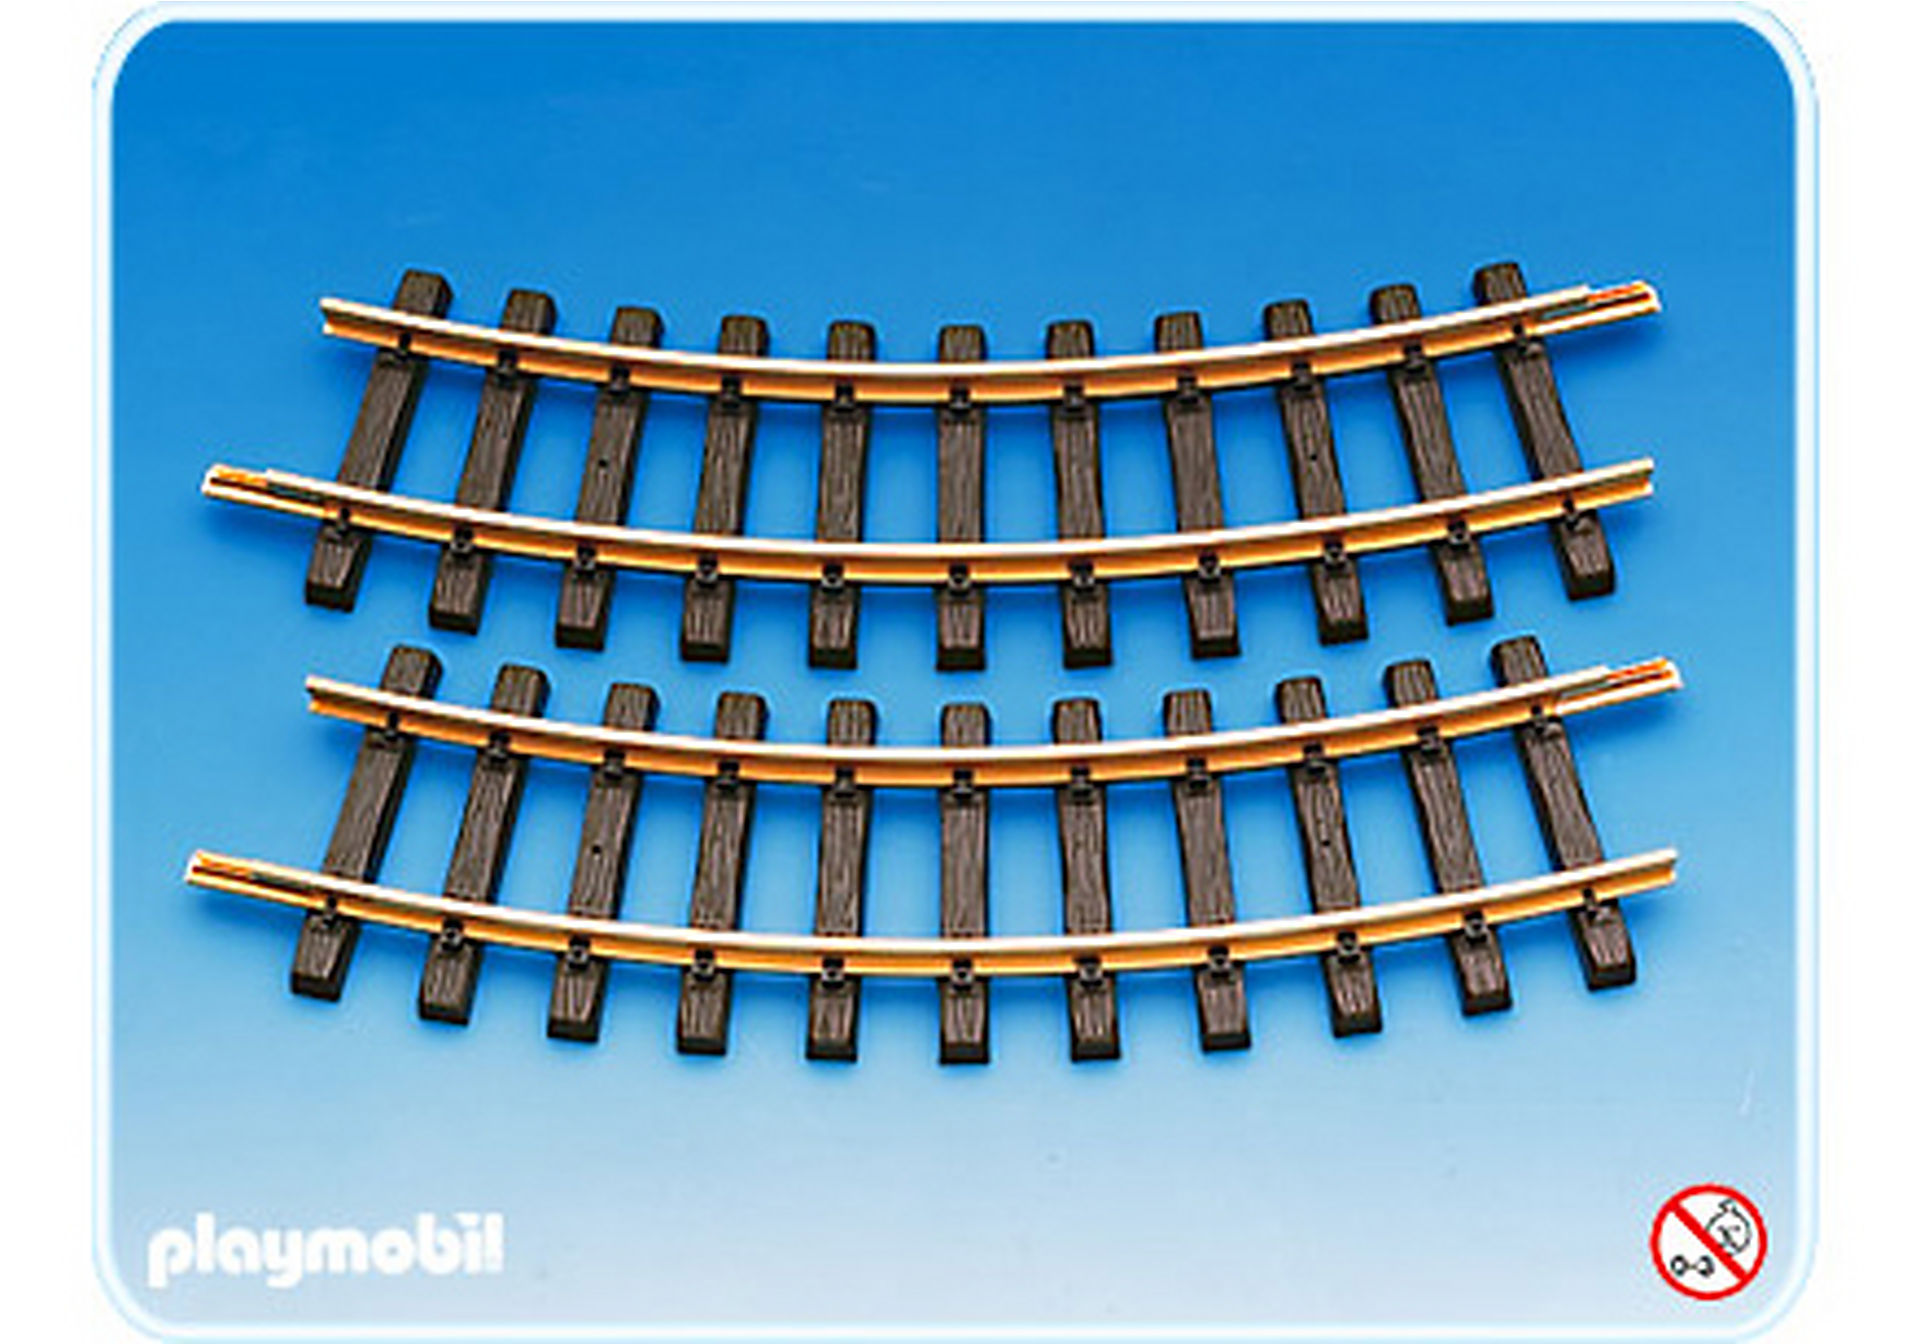 http://media.playmobil.com/i/playmobil/4368-A_product_detail/2 rails courbes